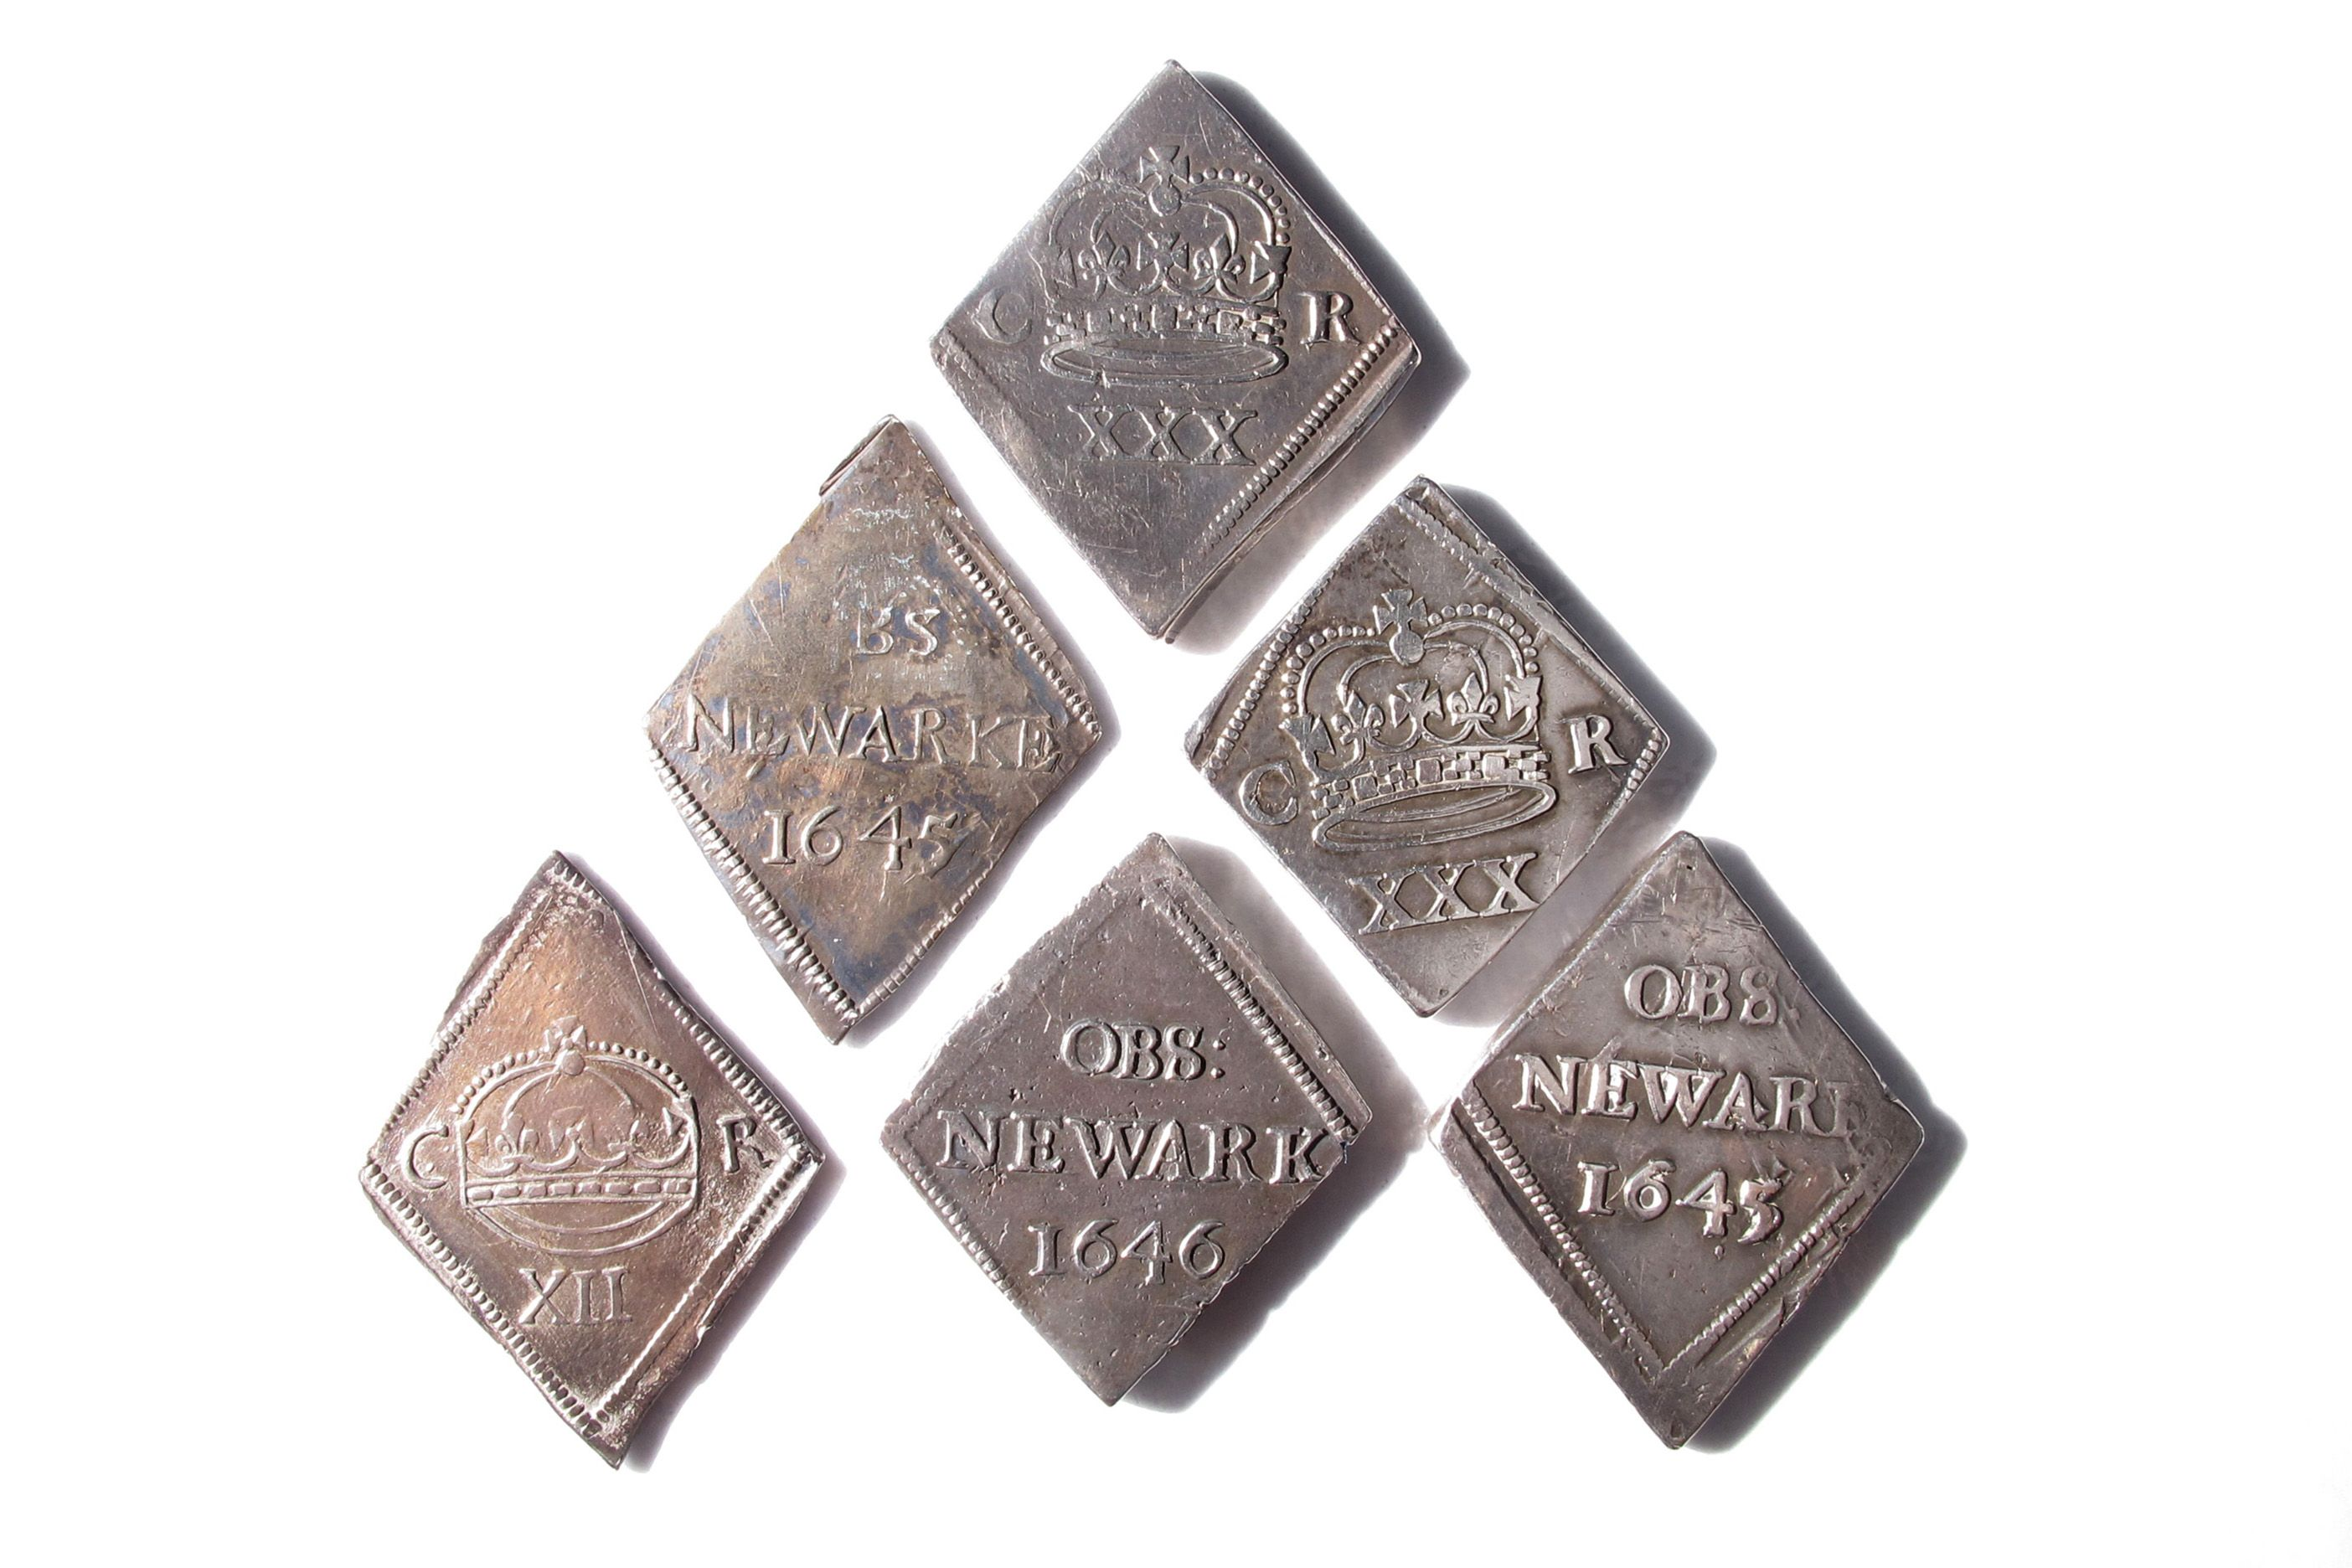 Siege coins minted in Newark from silver plate during the